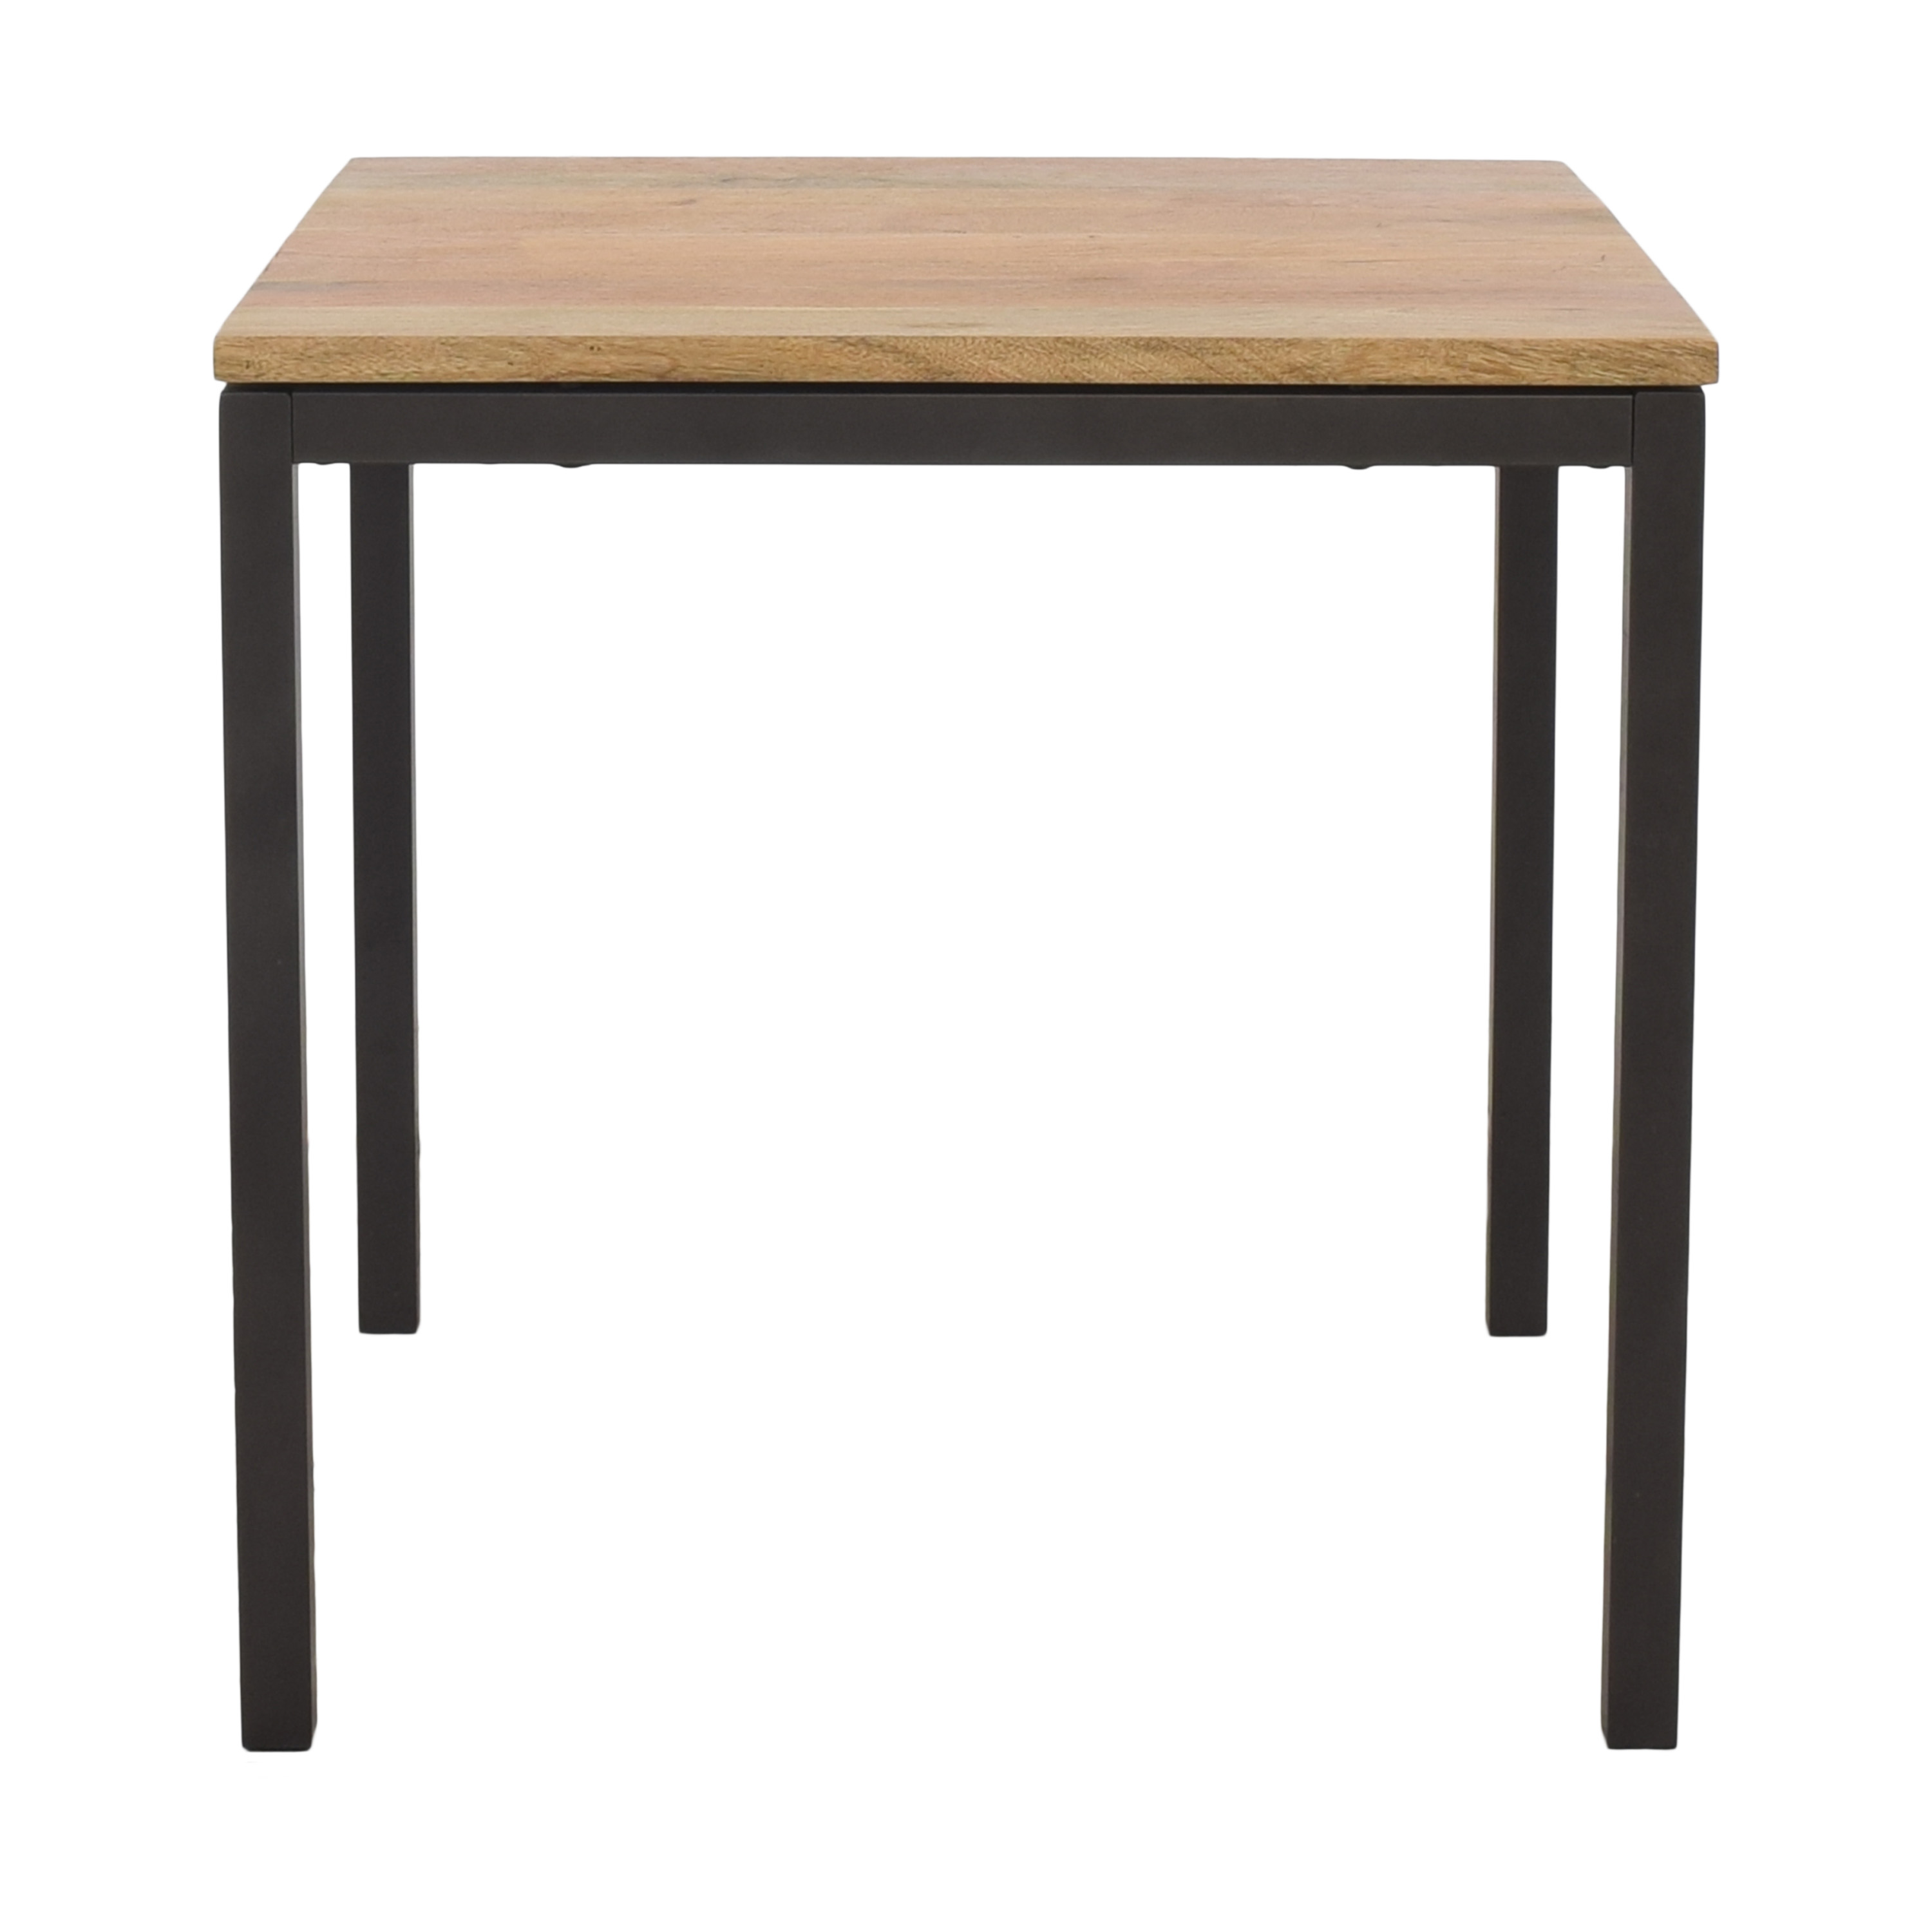 West Elm West Elm Box Frame Dining Table pa